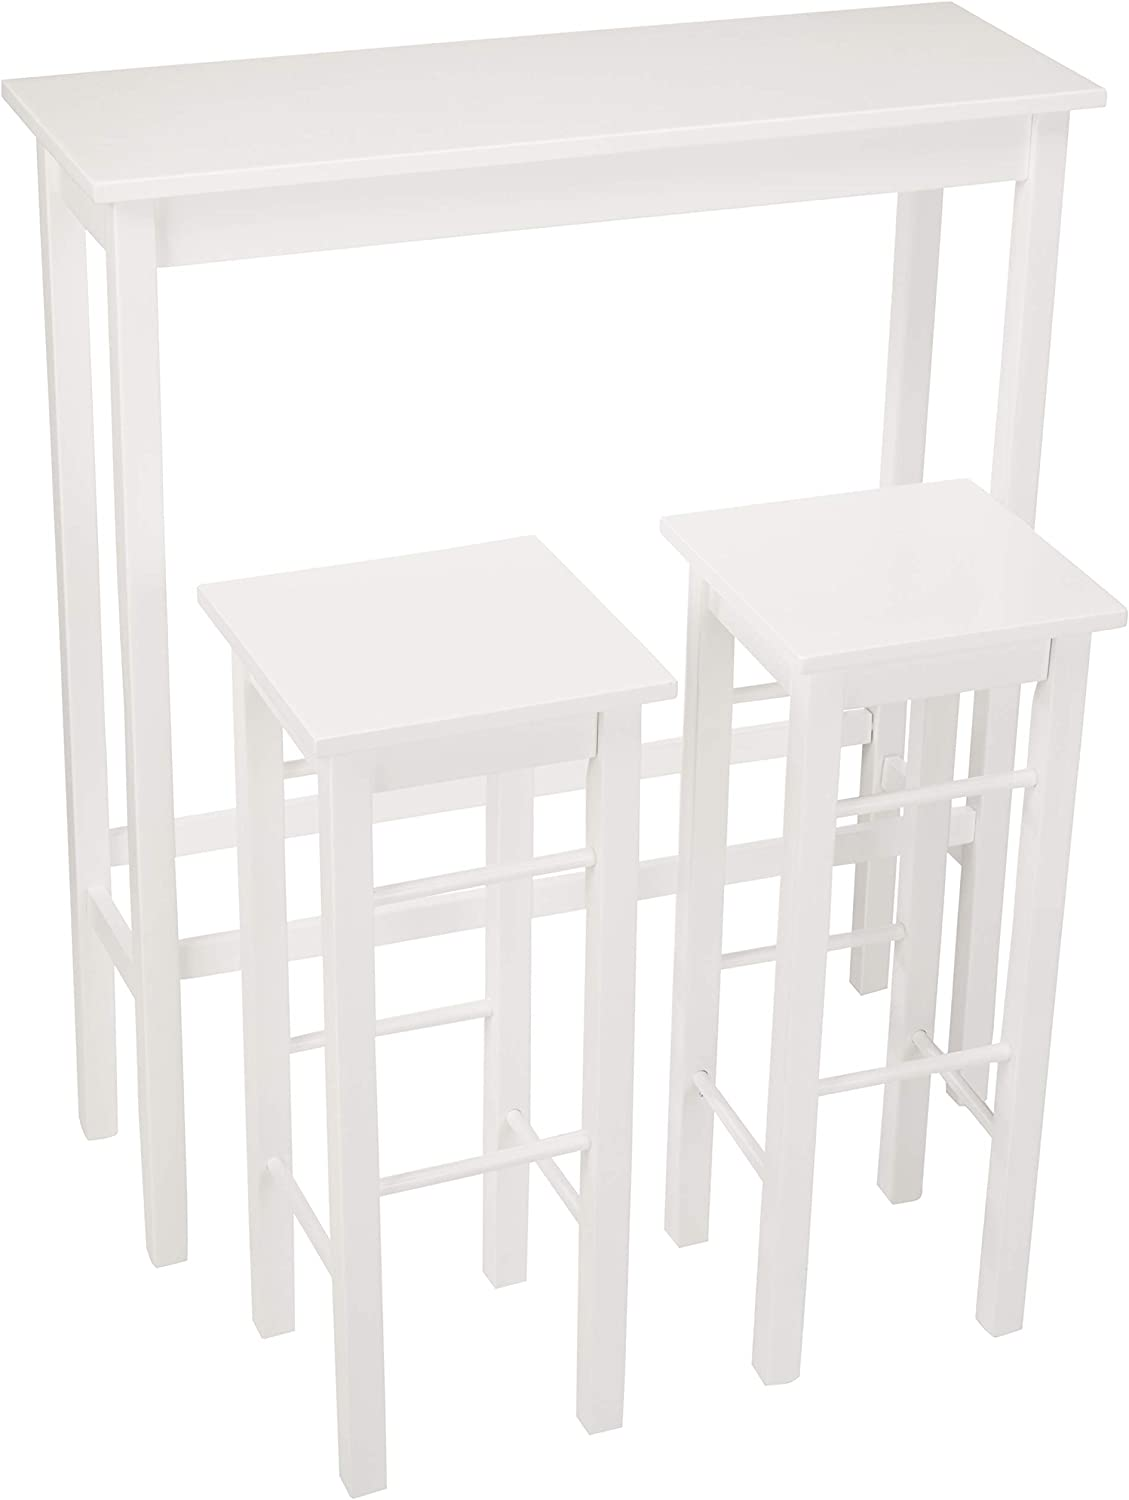 AmazonBasics Breakfast Bar Bistro Table - 3-Piece Set,White